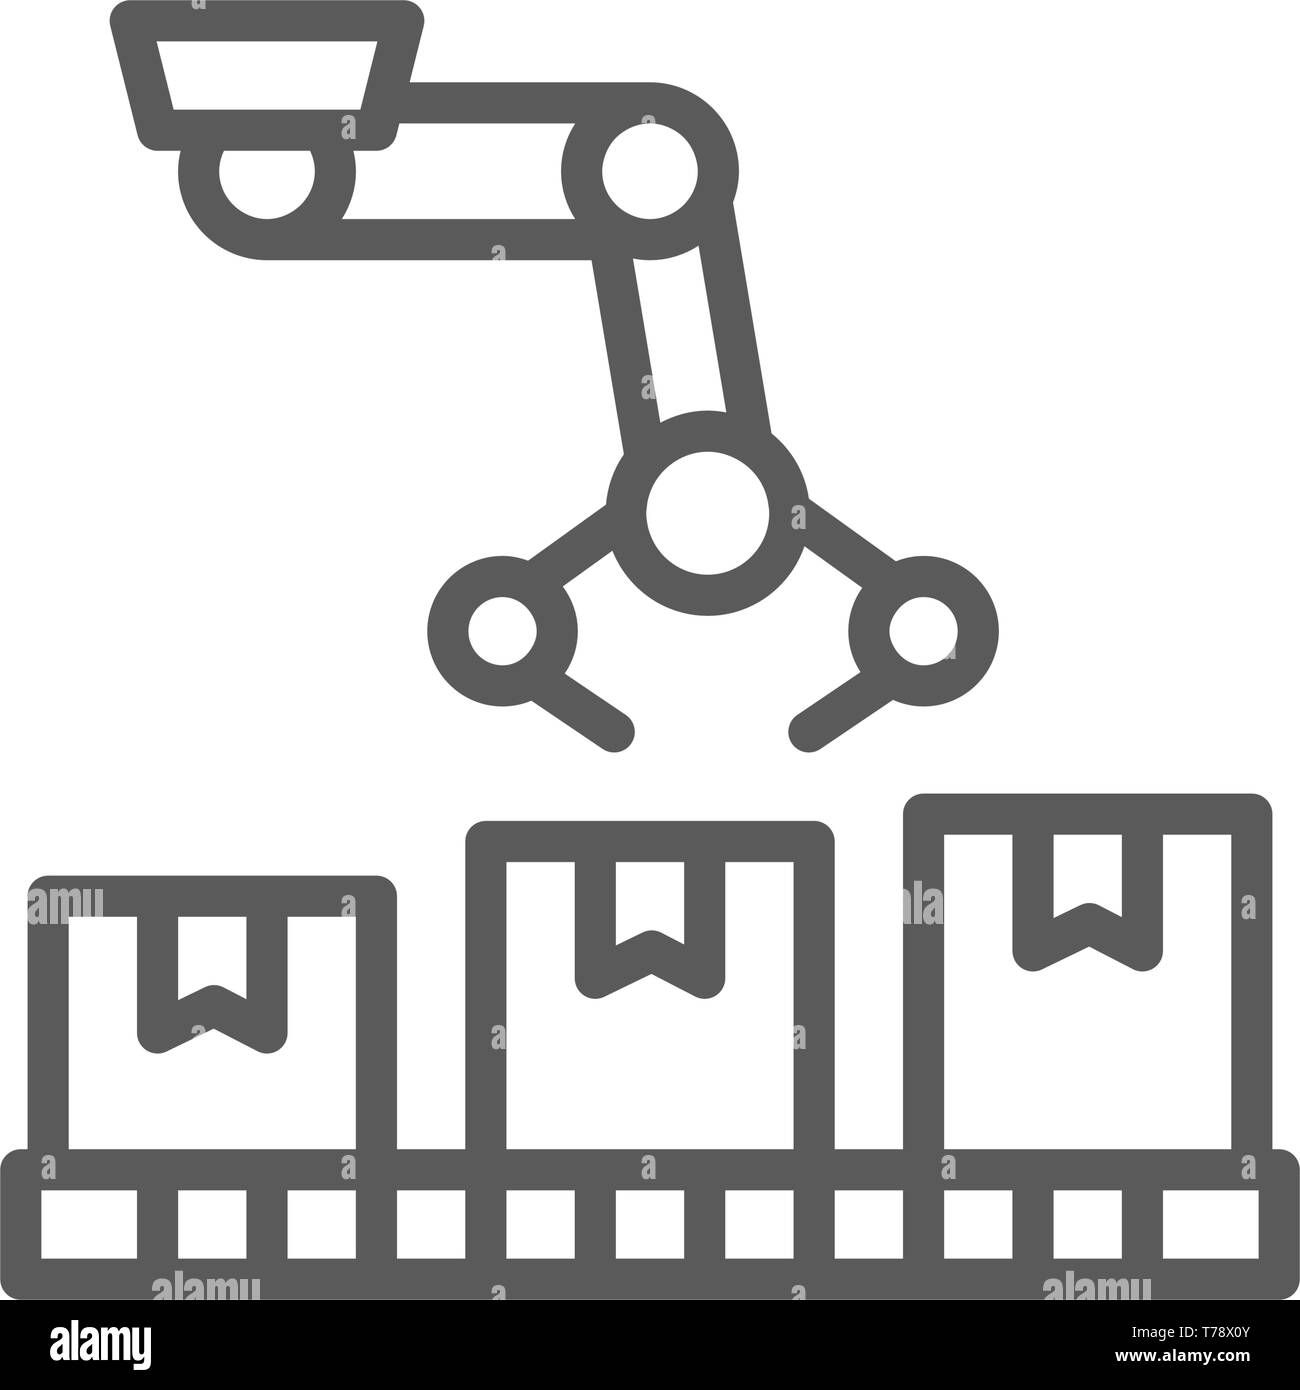 Robotic arm on packing conveyor, production line icon. - Stock Image